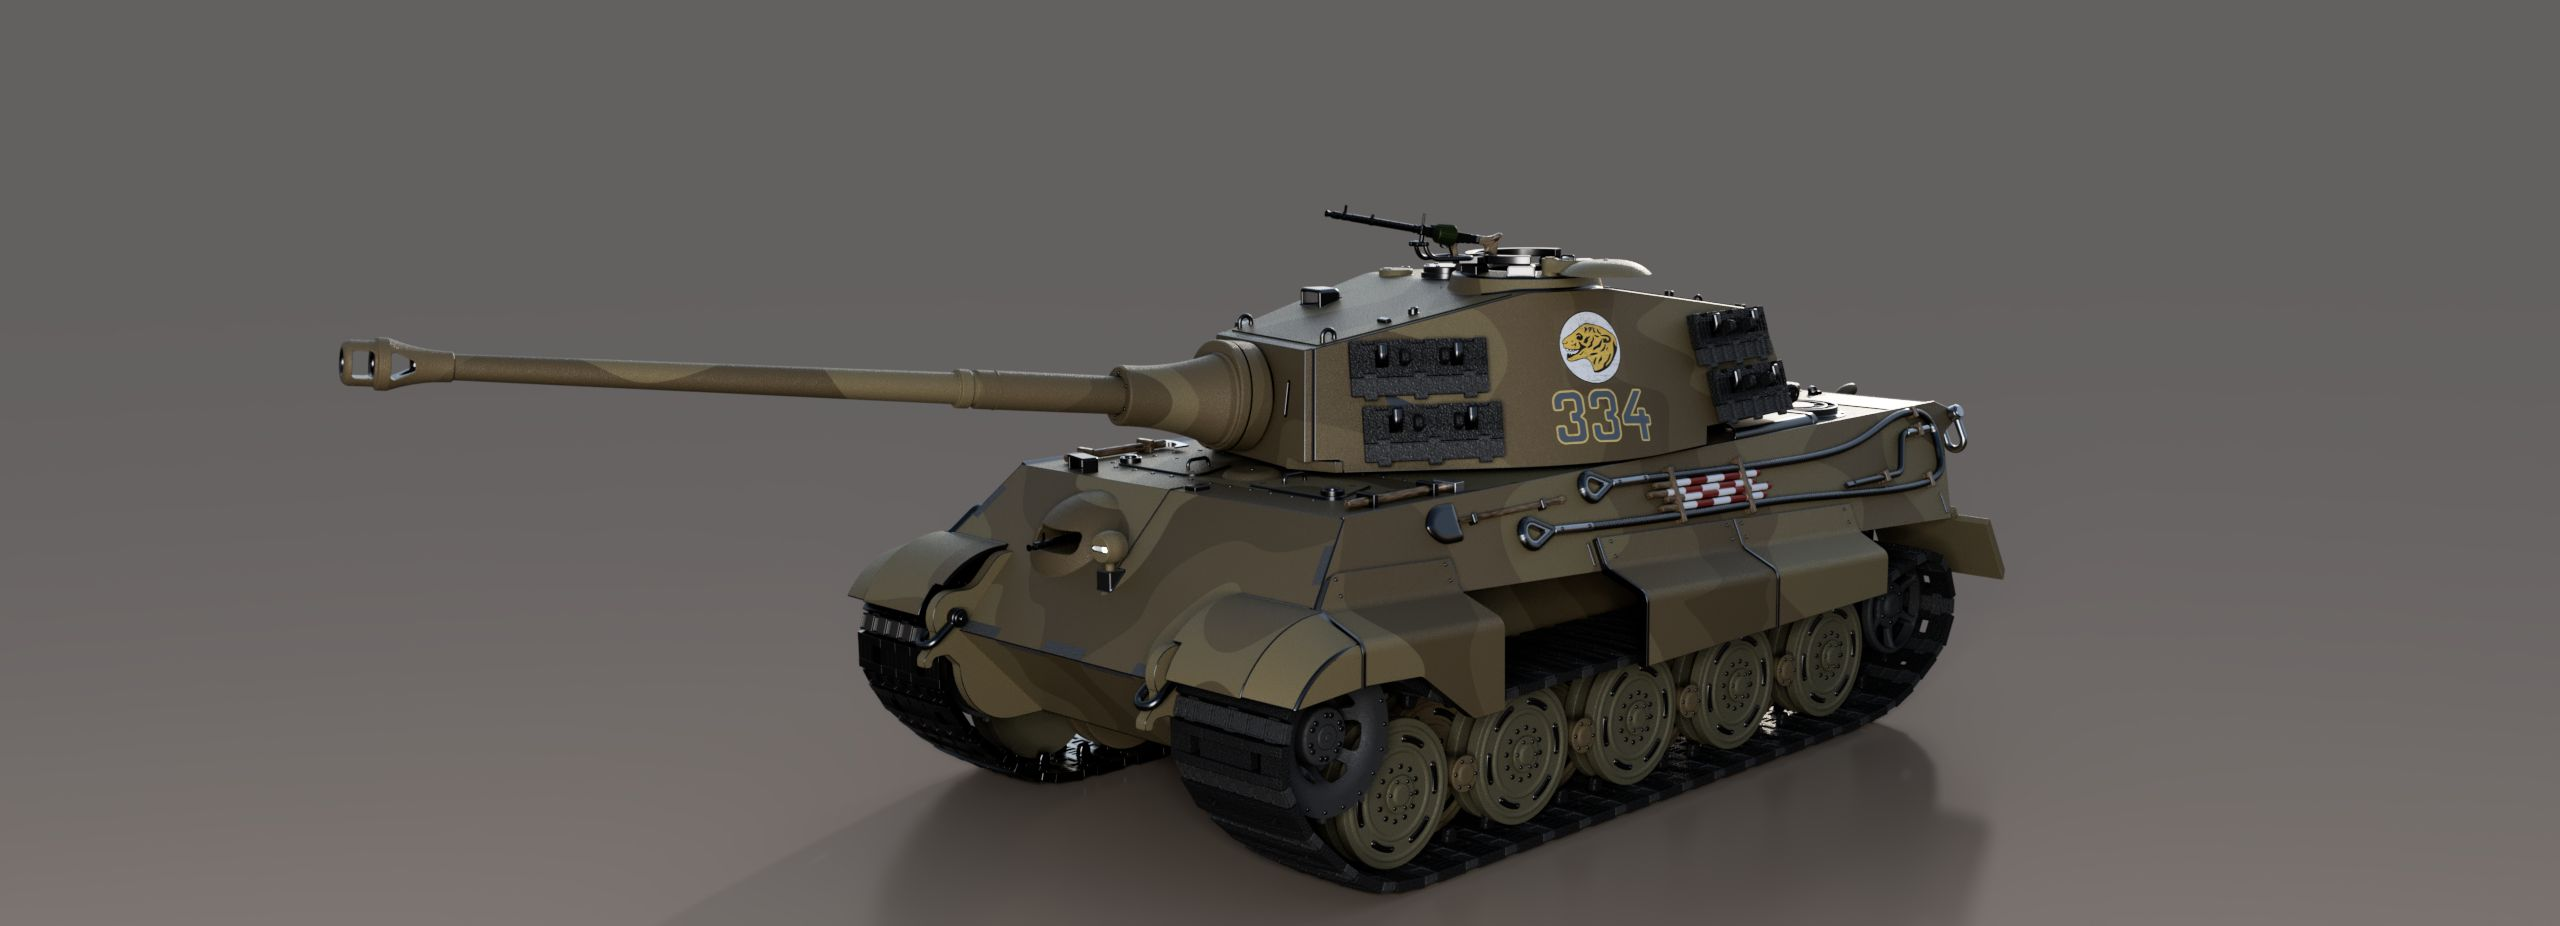 Tiger-ii-komplett-wuste-2018-sep-20-08-13-56am-000-customizedview13429831278-png-3500-3500